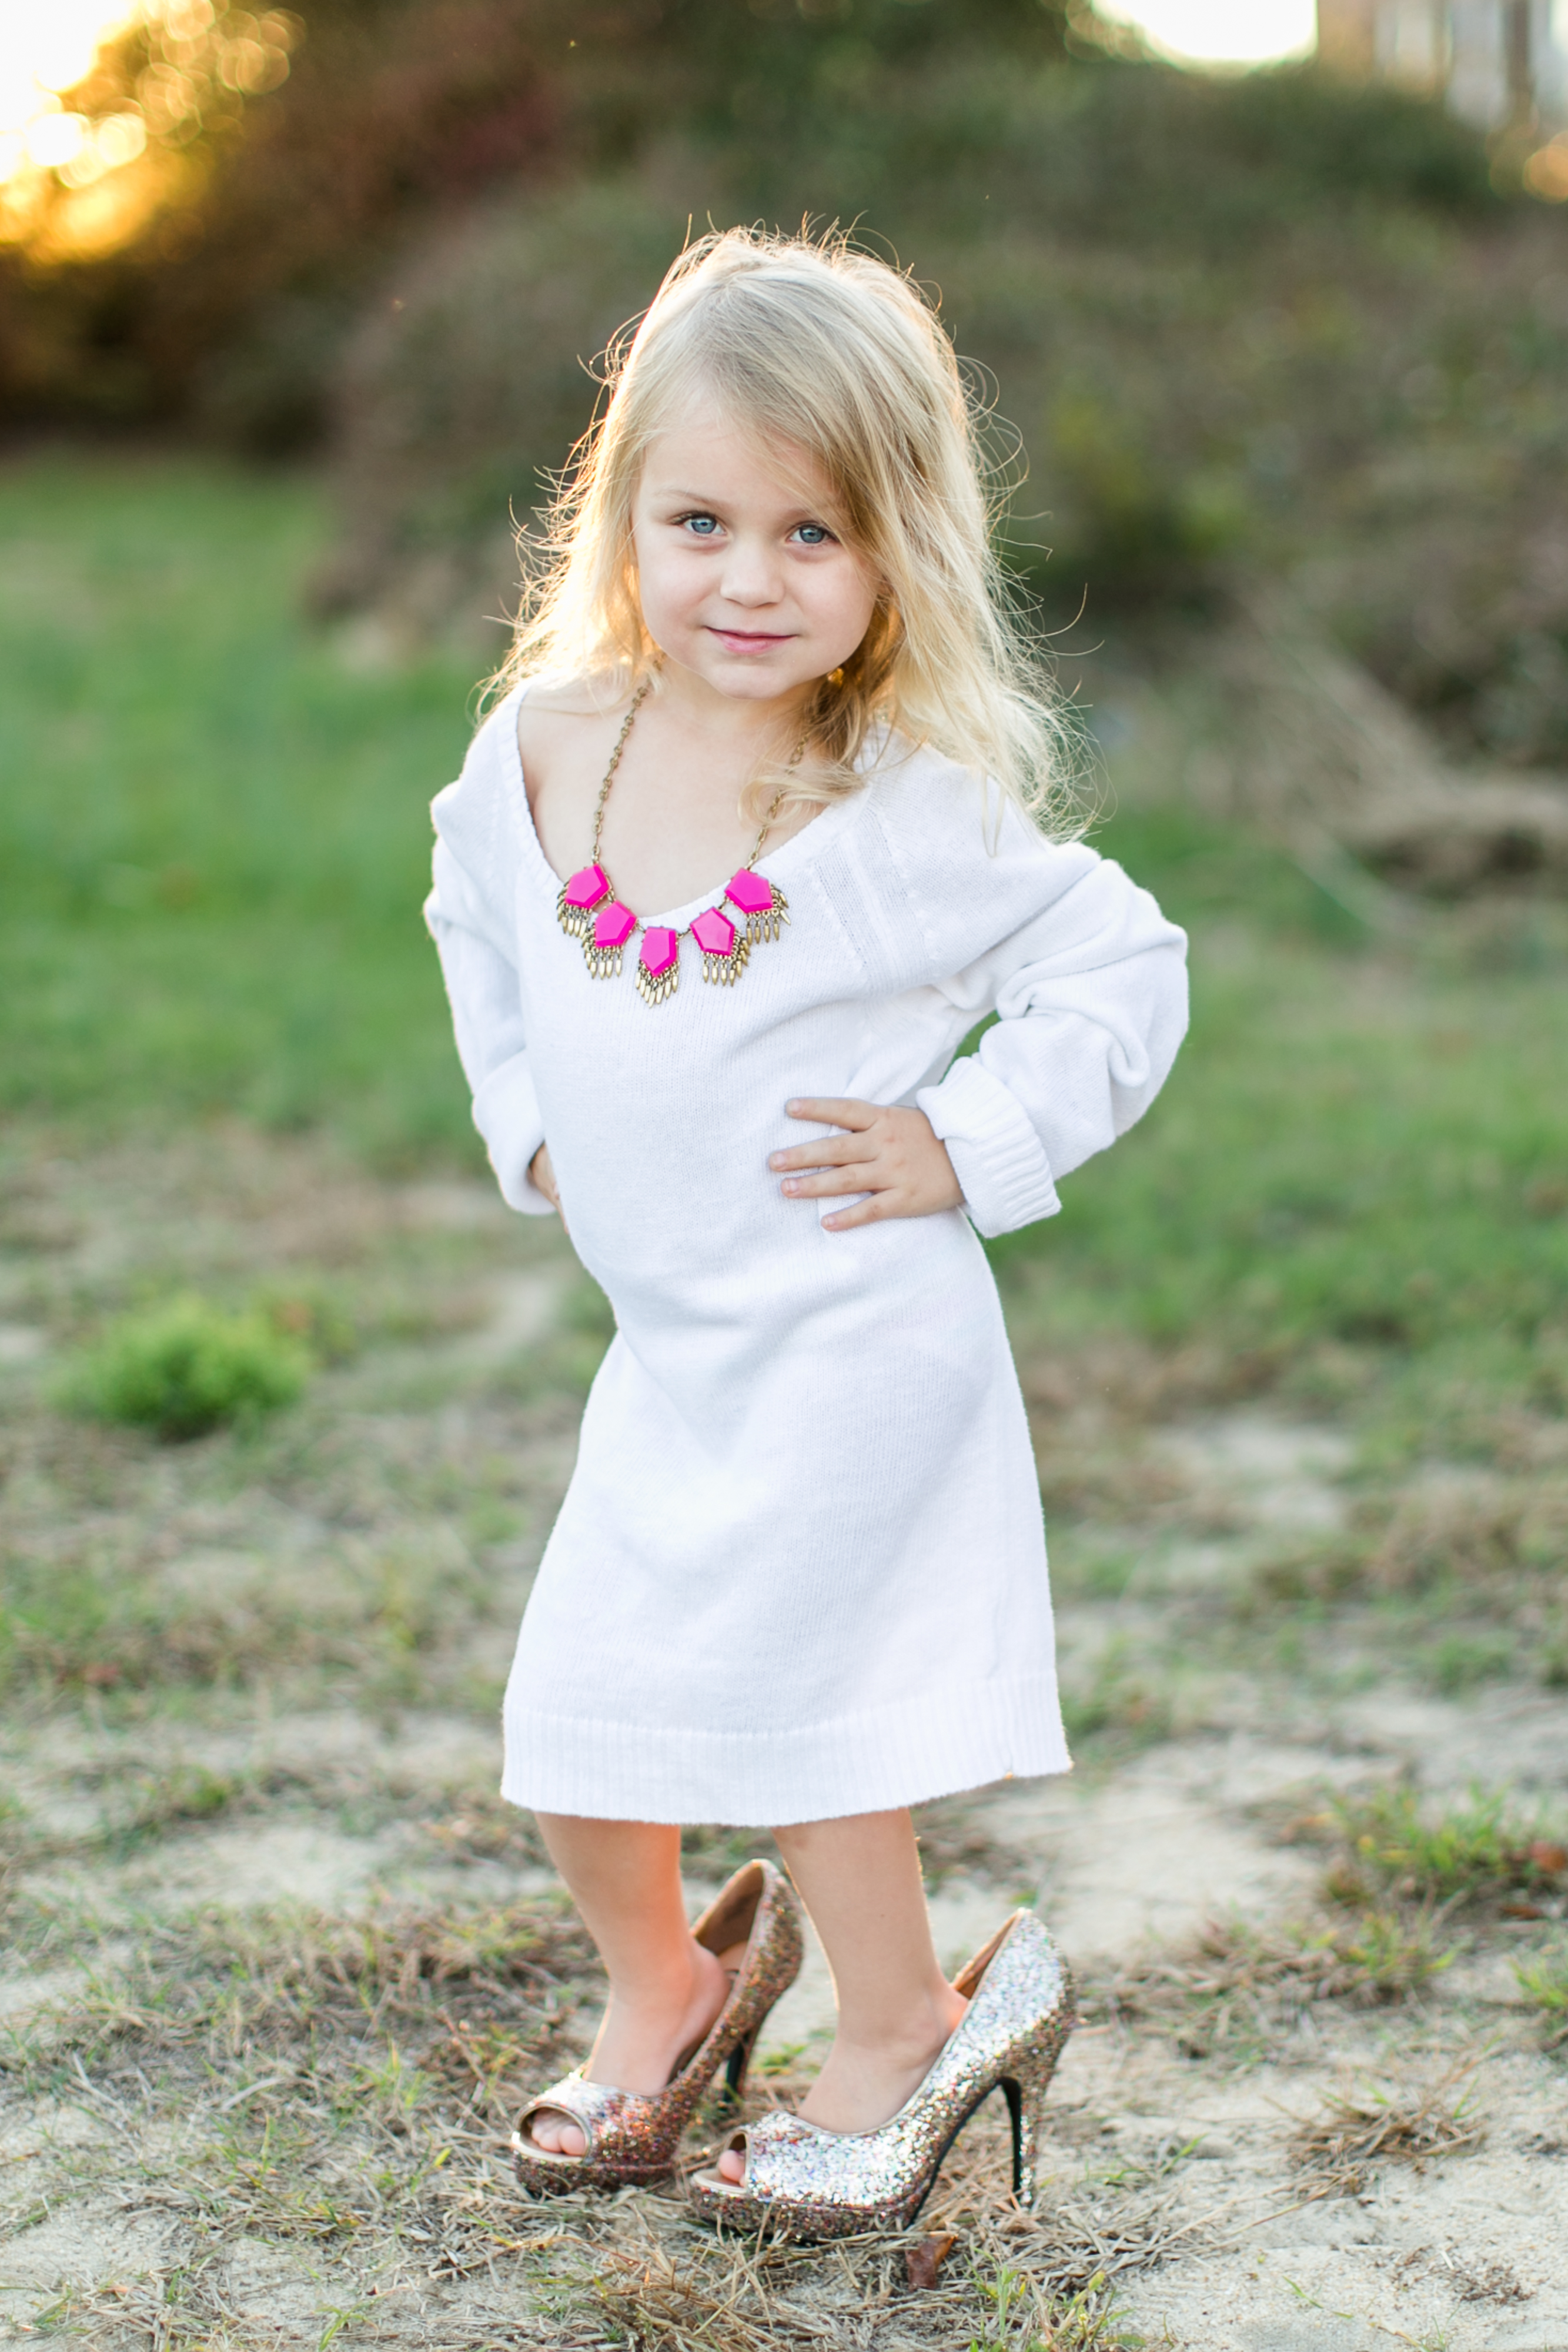 Four Year Two Year Community: White Sweater & Glittery Heels Project